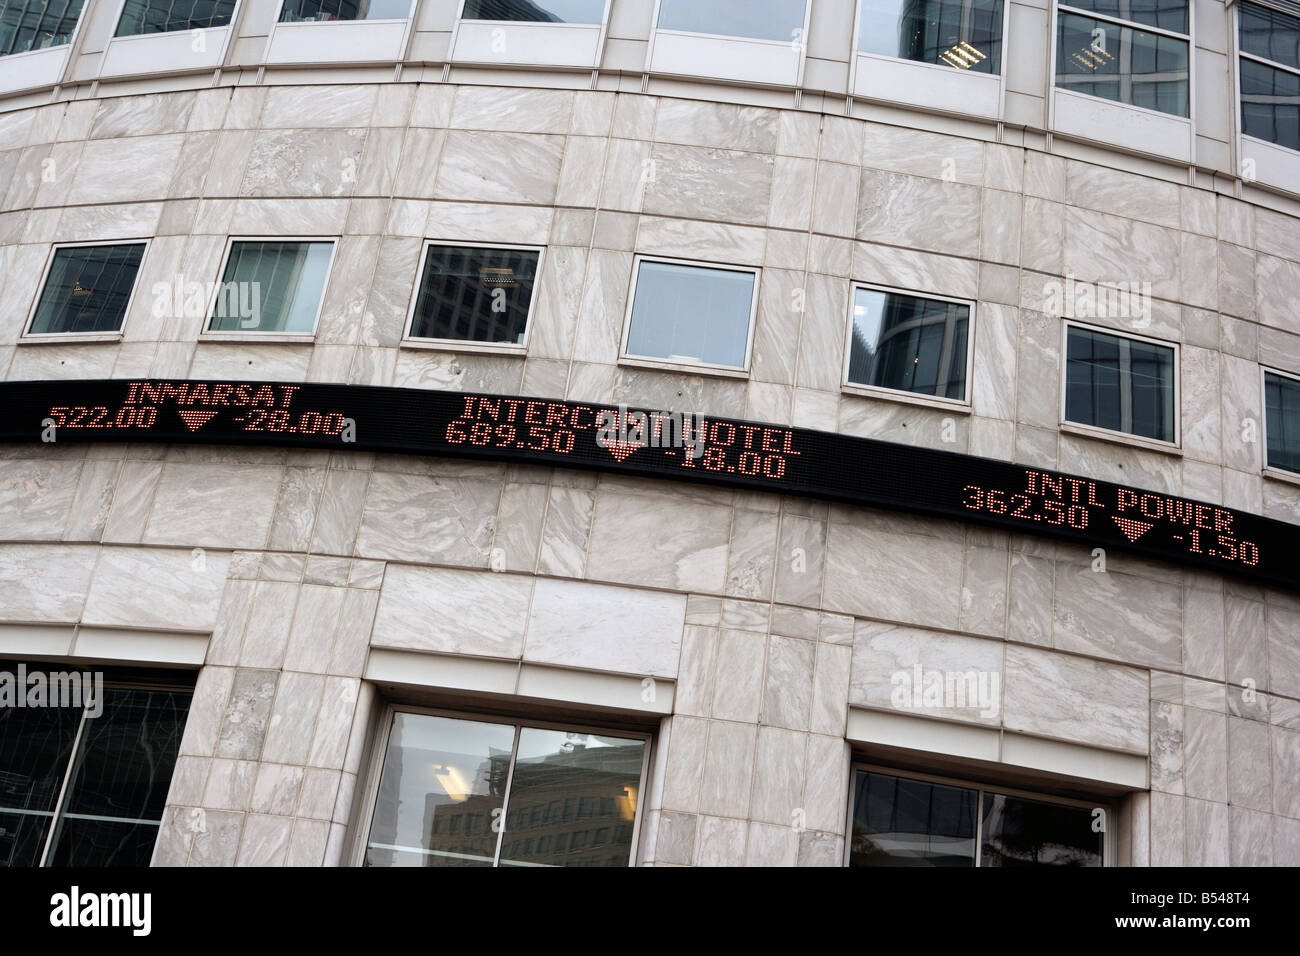 Ticker Tape Stock Prices Canary Wharf London - Stock Image